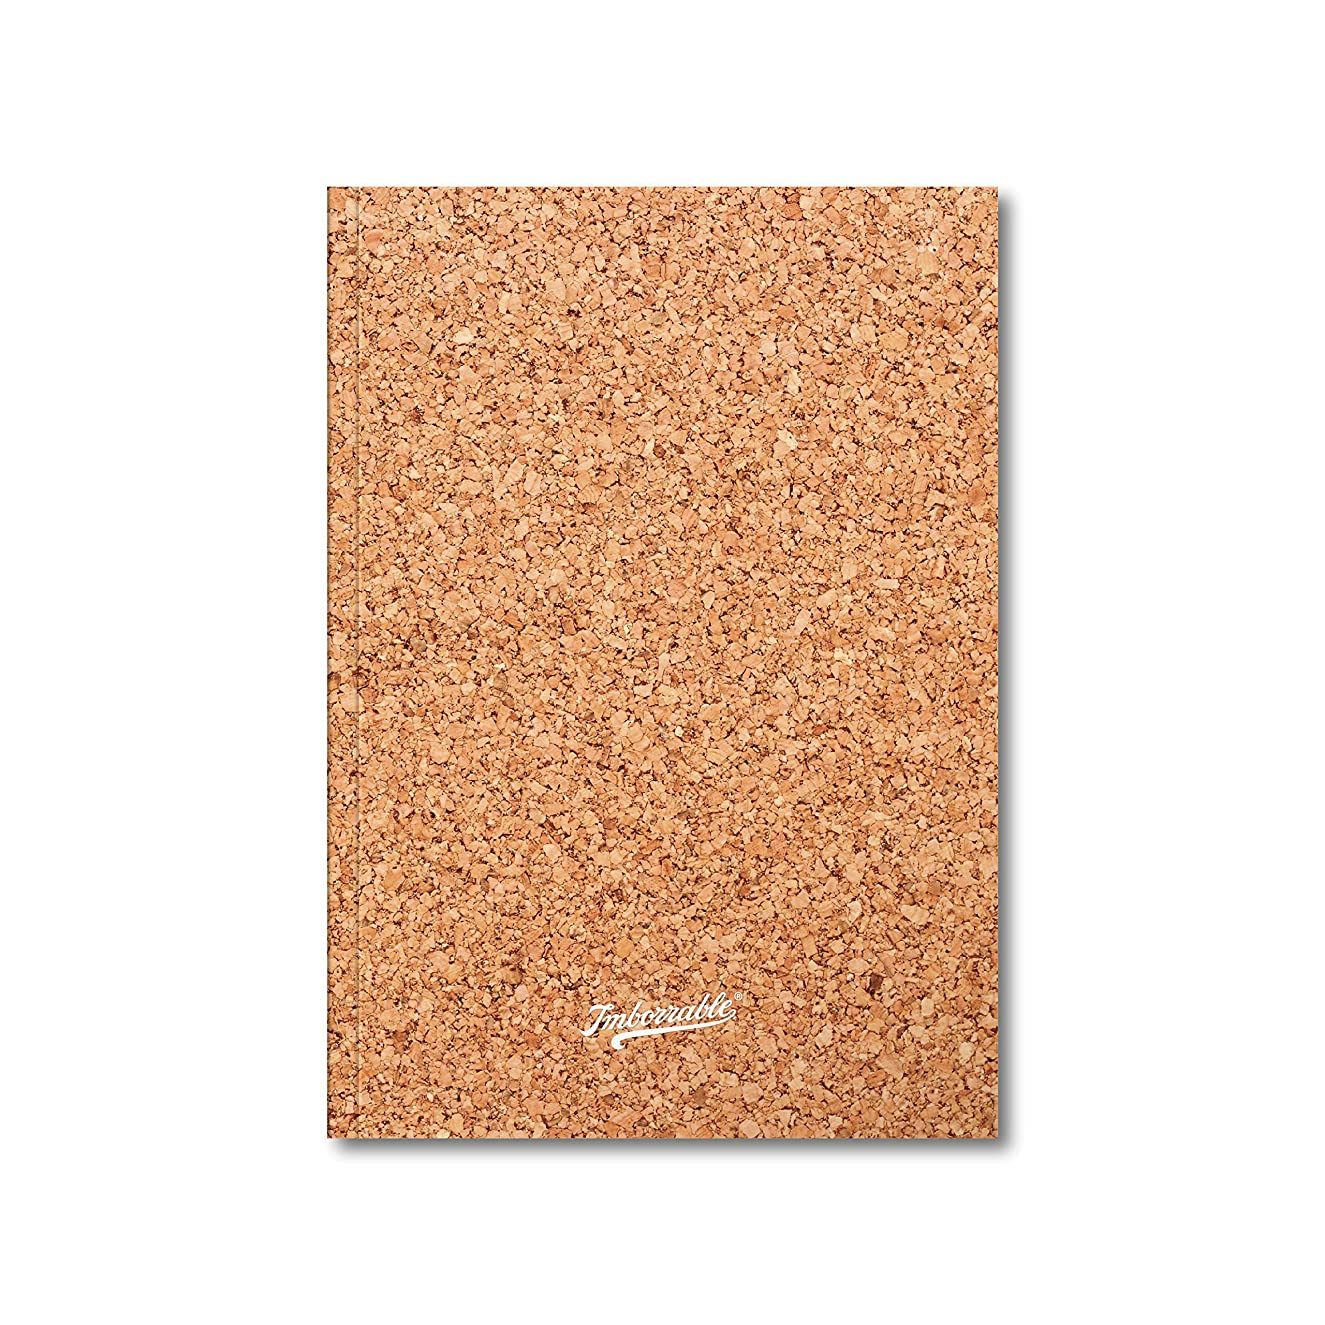 Imborrable?–?A5 Notebook, 96?Pages, Dotted Grid Paper, Cork, 14.8?x 21?cm